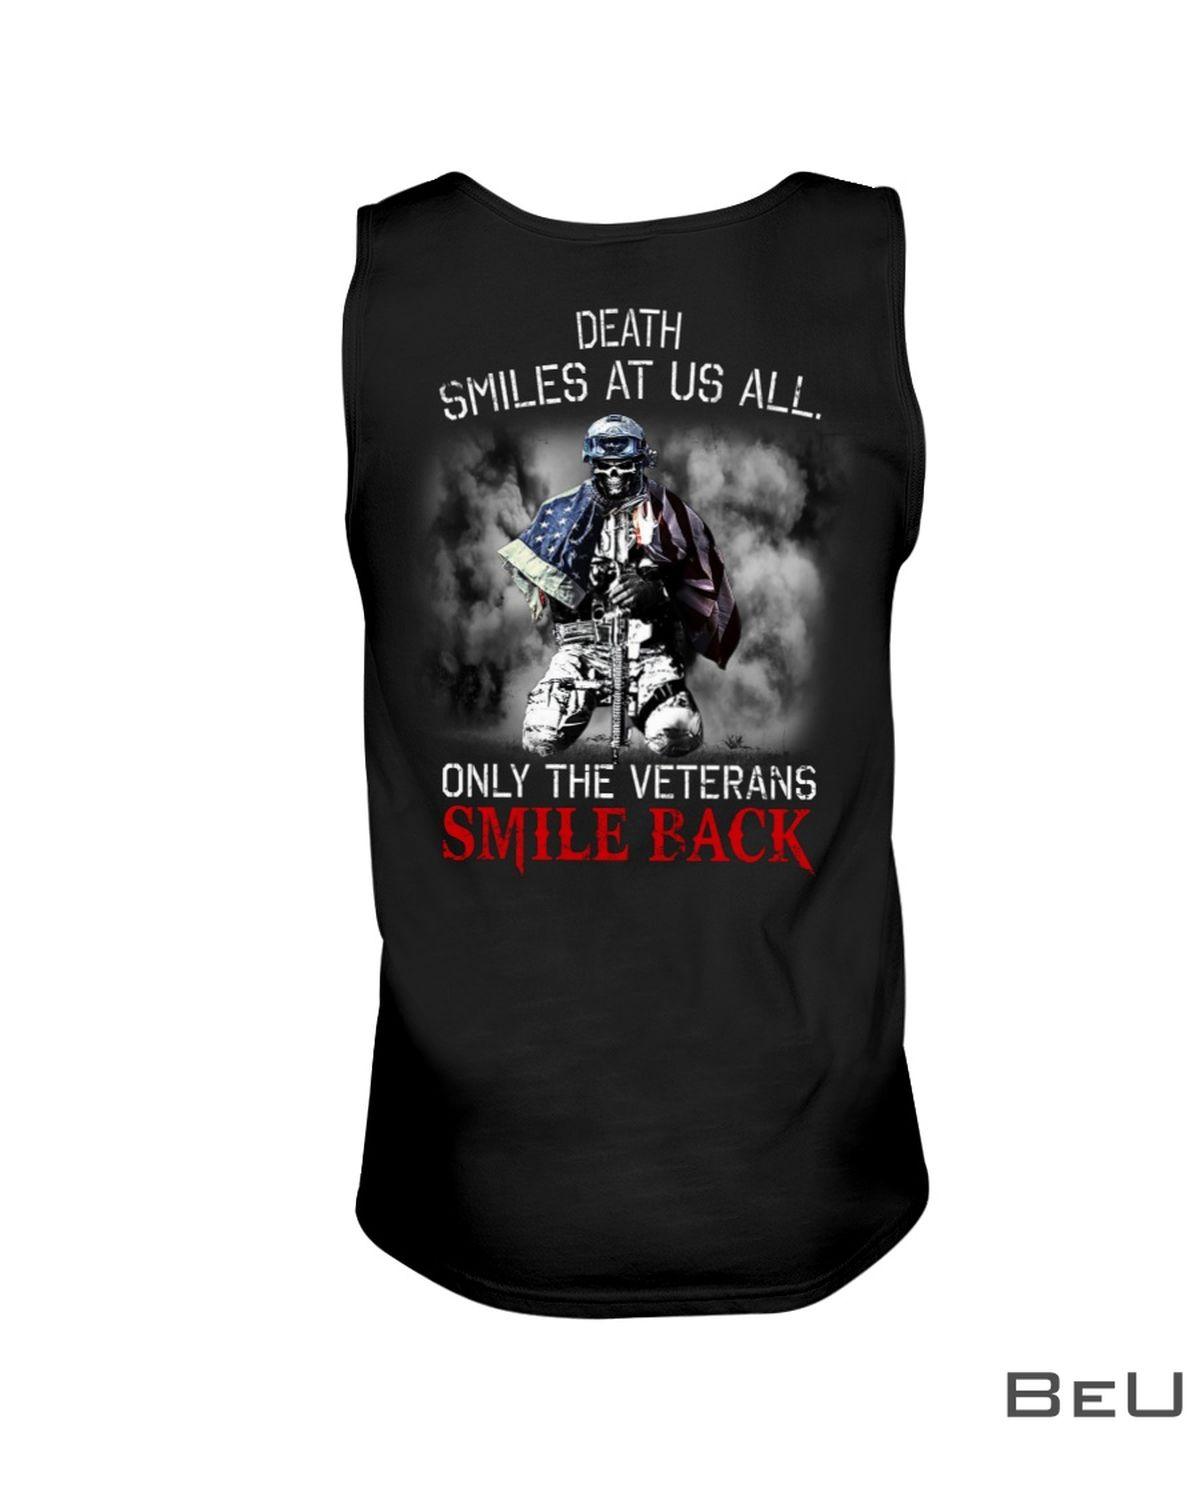 Death Smiles At Us All Only The Veterans Smile Back Shirtc